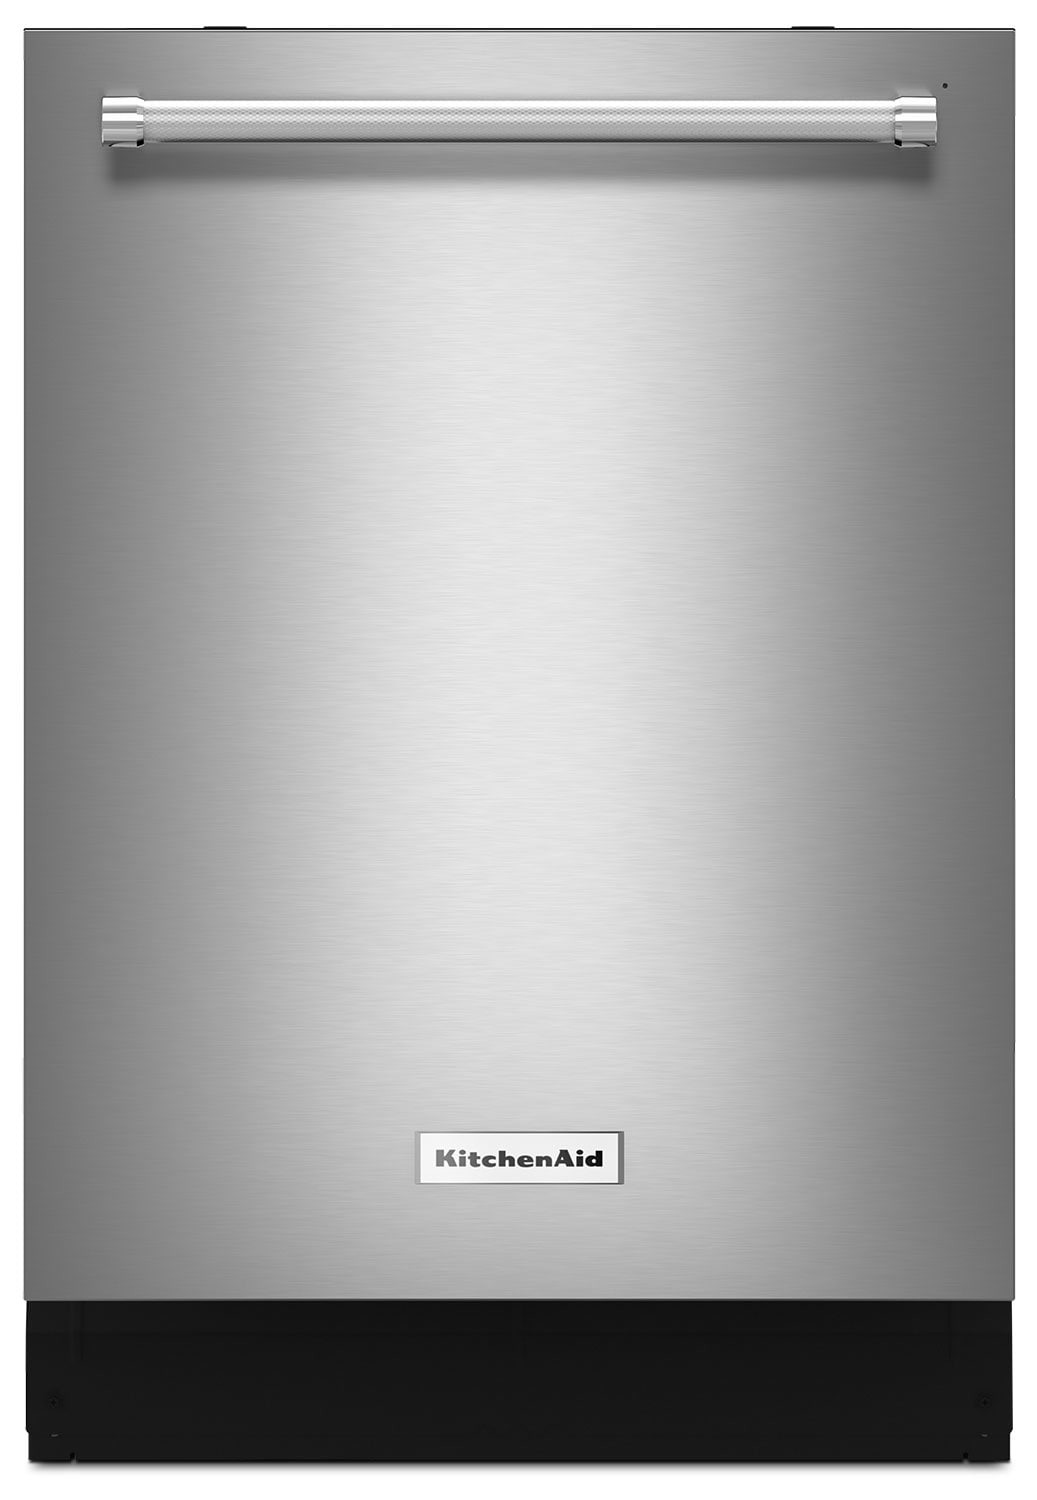 "Clean-Up - KitchenAid 24"" Dishwasher with ProScrub® Option - Stainless Steel"